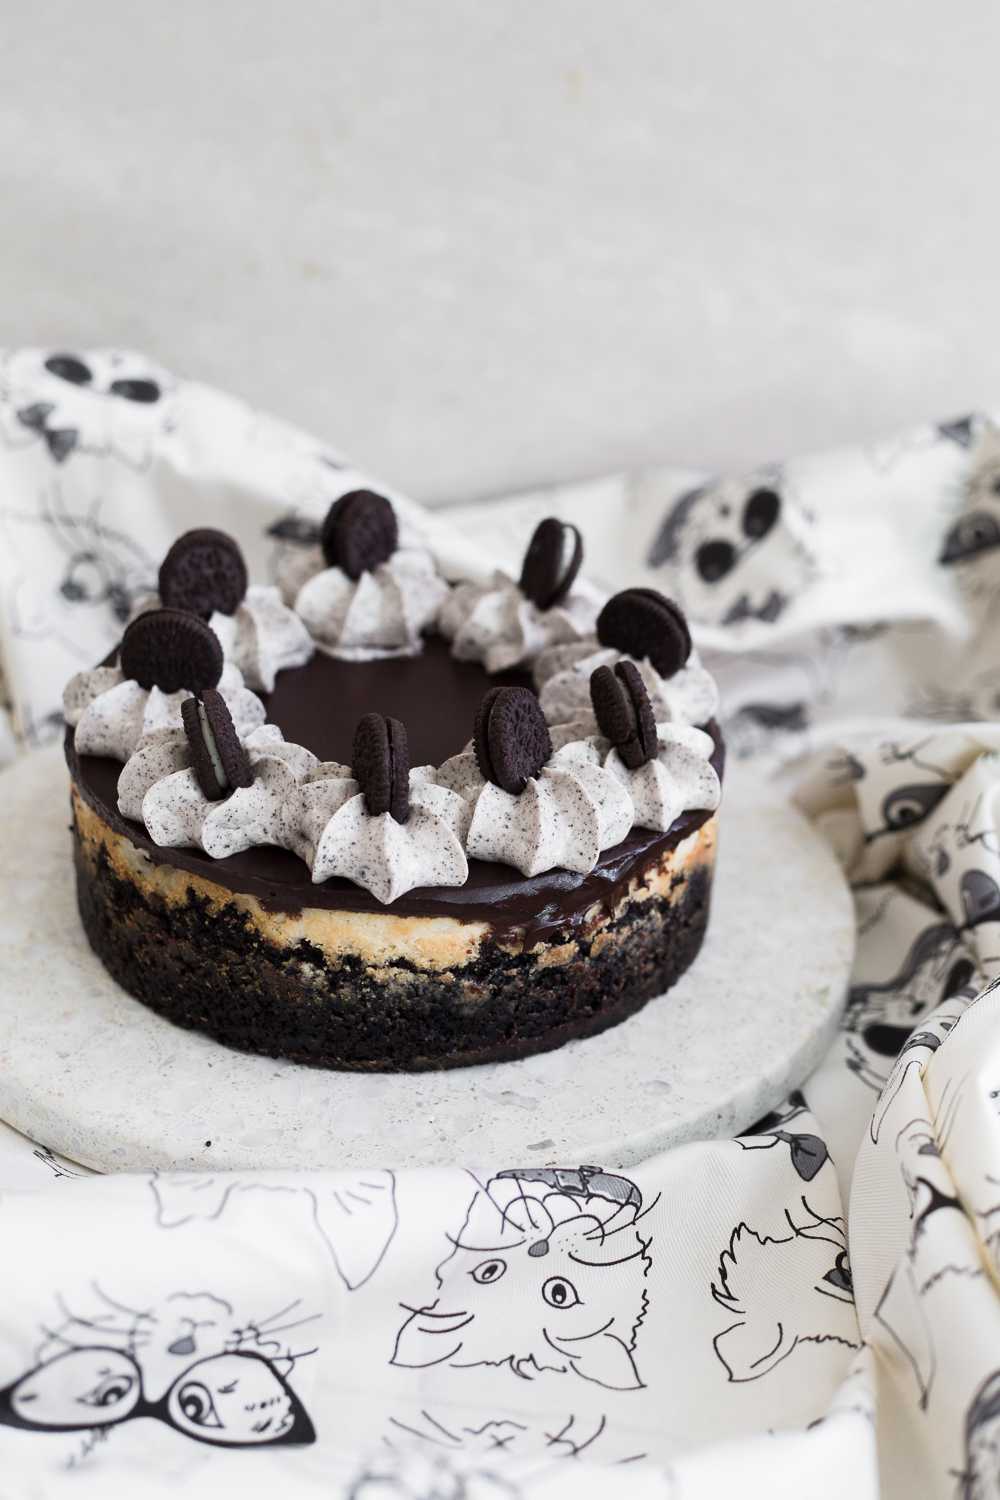 The Ultimate Baked Vegan Cheesecake  - The Ultimate Baked Vegan Cheesecake recipe, so good you'll even fool the omnivores! Easy to make, low in cost and 100% Nut Free/Dairy Free.